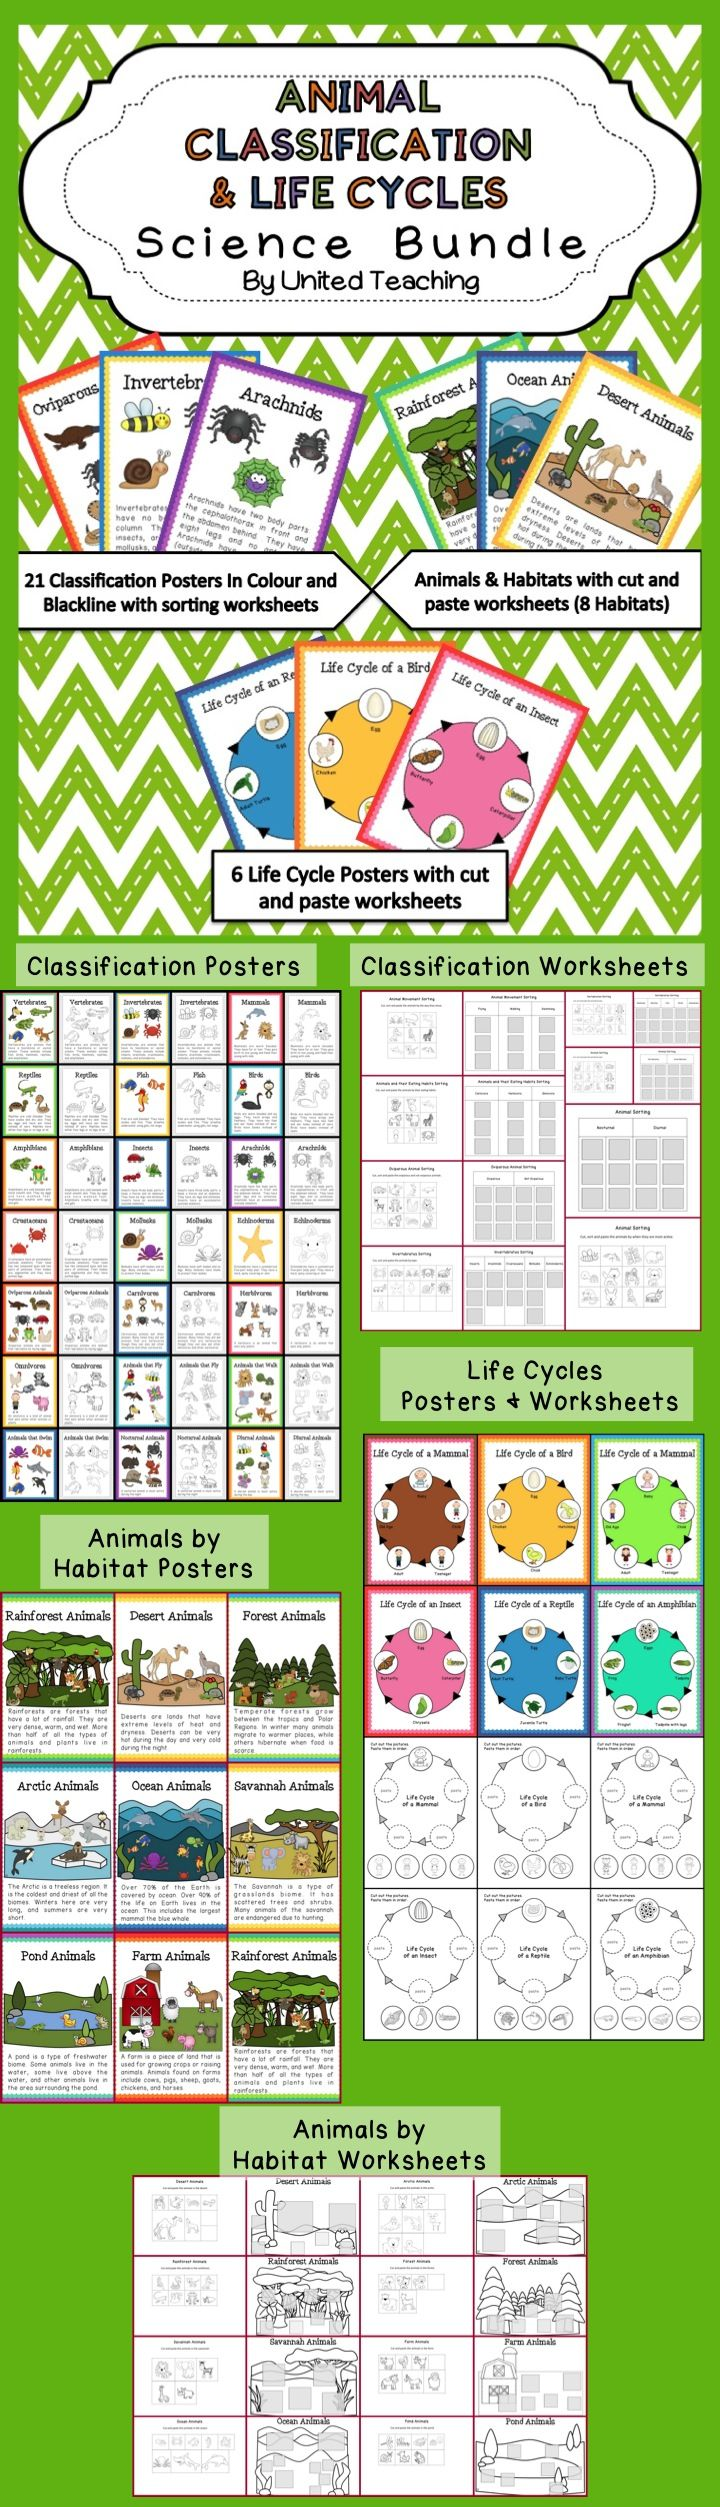 Animal Classification & Life Cycles Science Bundle >> This Bundle includes Animal Classification Posters & Coloring Worksheets, Animal Sorting Worksheets, Animal Life Cycle Posters & Worksheets, Animals by Habitats Posters & Worksheets.